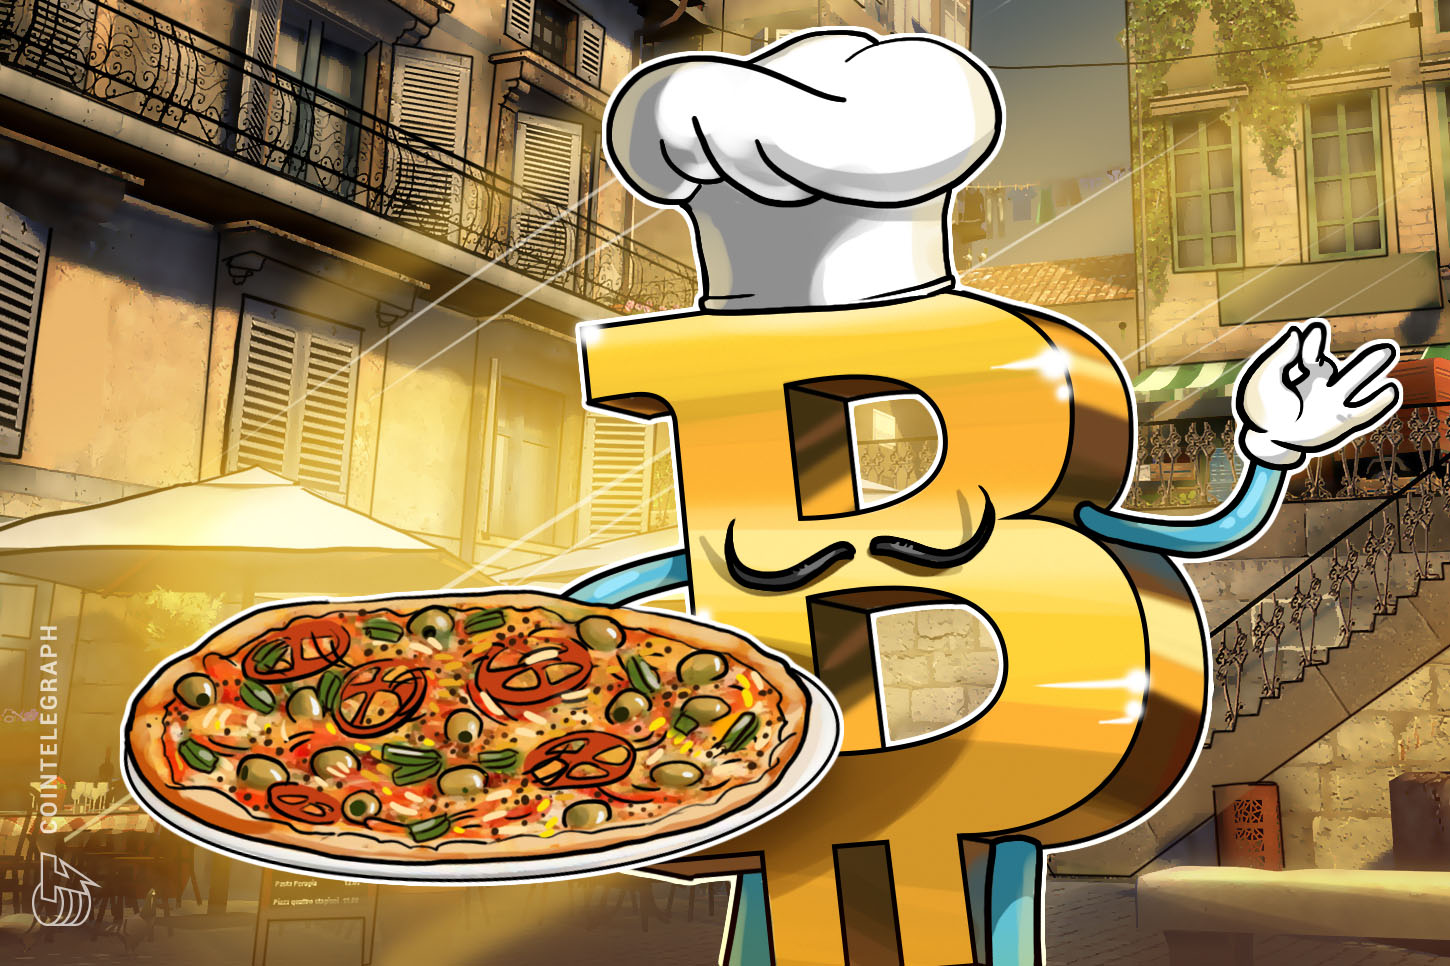 where to buy bitcoins near me pizza